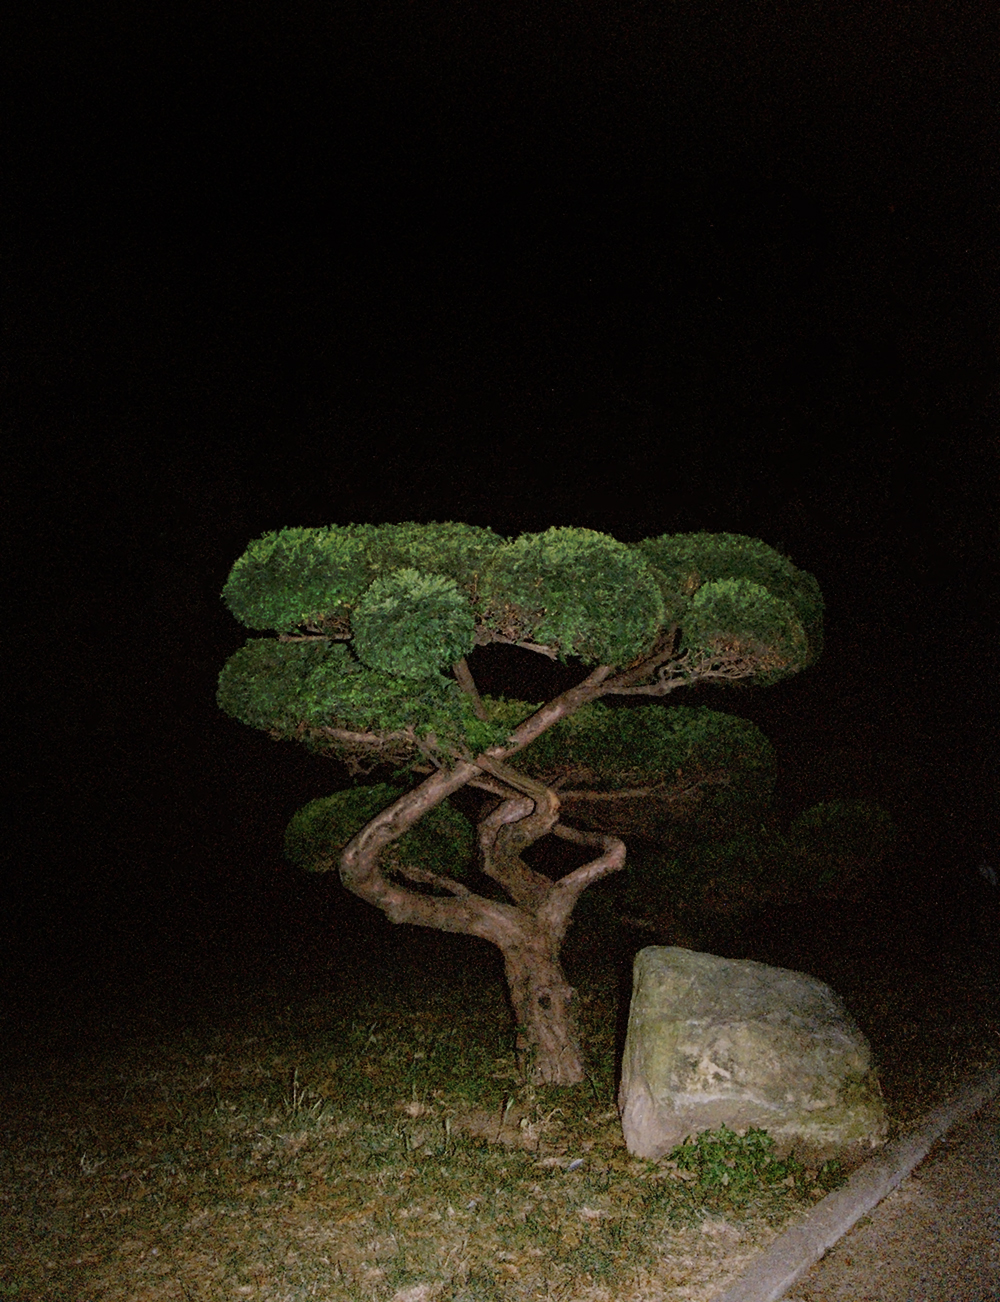 Lili Jamail  Bonsai Full, 2018 inkjet print 13 x 10 in; 33 x 25 cm edition of 5 Courtesy of Lili Jamail and team (gallery, inc.), New York.